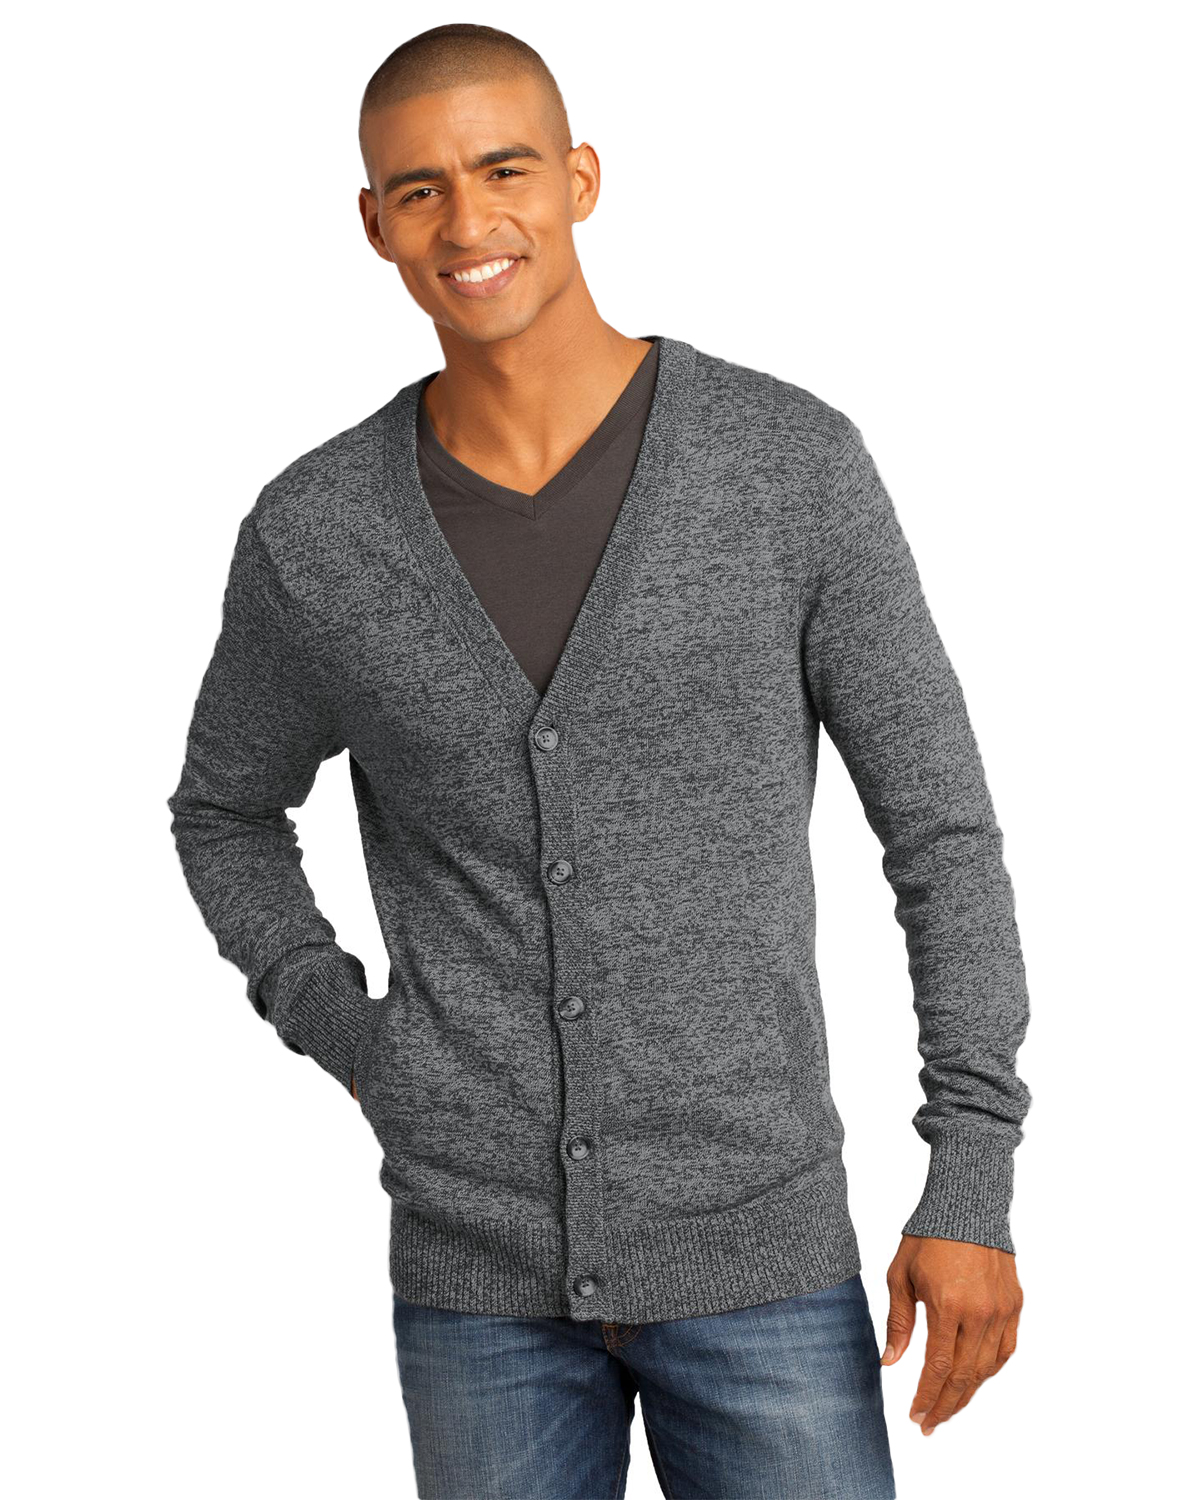 Shop sweaters for men online at autoebookj1.ga, find latest styles of cheap cool elbow patch sweaters, turtleneck sweater and more mens knitwear at discount price.